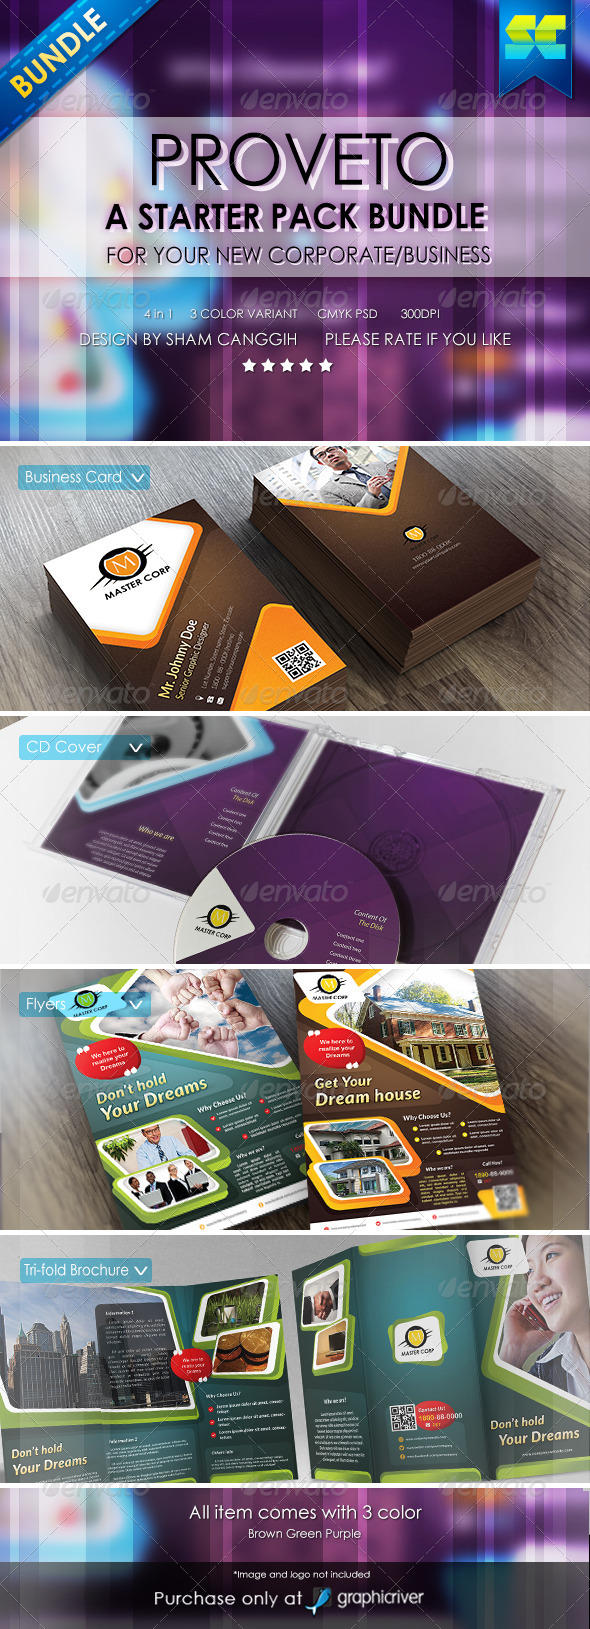 GraphicRiver Proveto Corporate Business Starter Pack Bundle 6492754